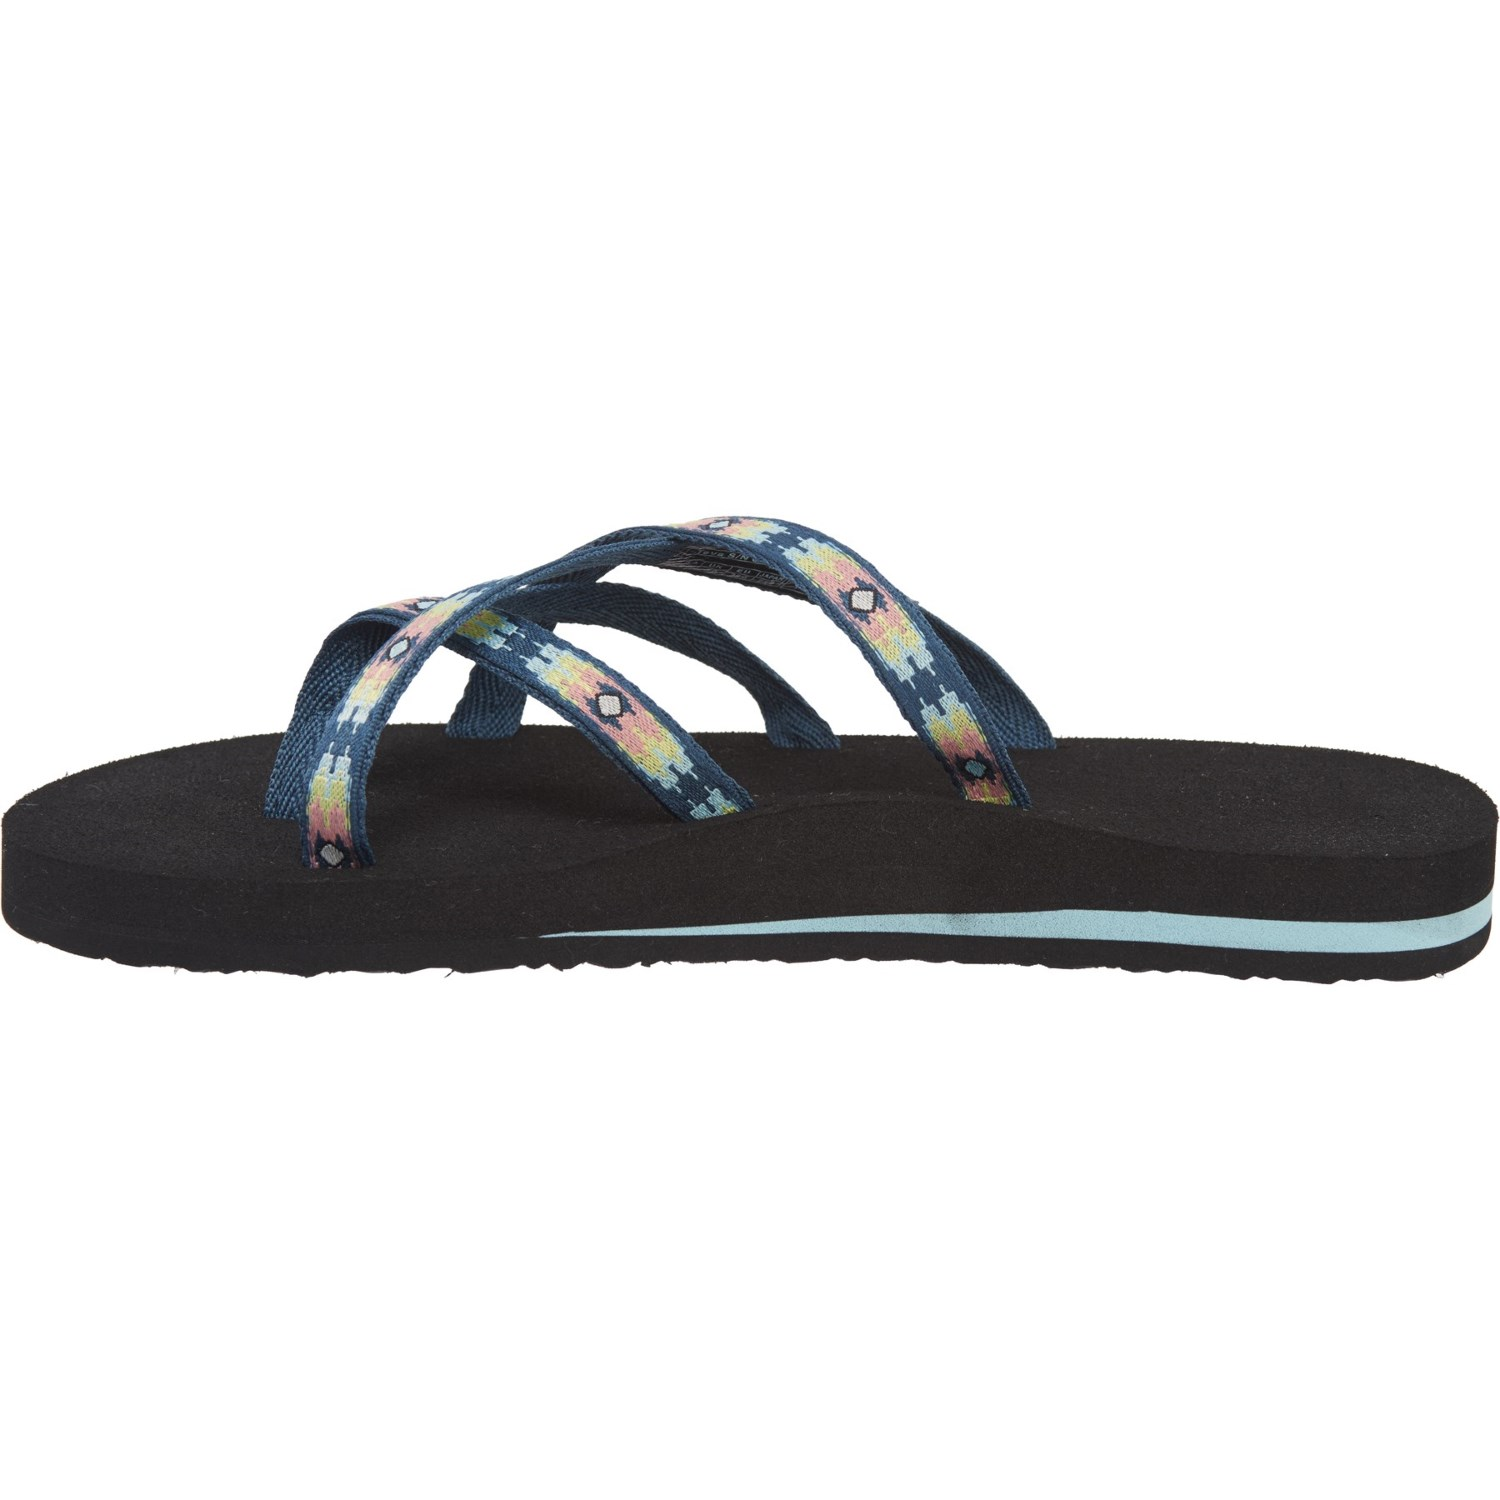 cfcf8bd28cb3 Teva Olowahu Flip-Flops (For Women) - Save 35%